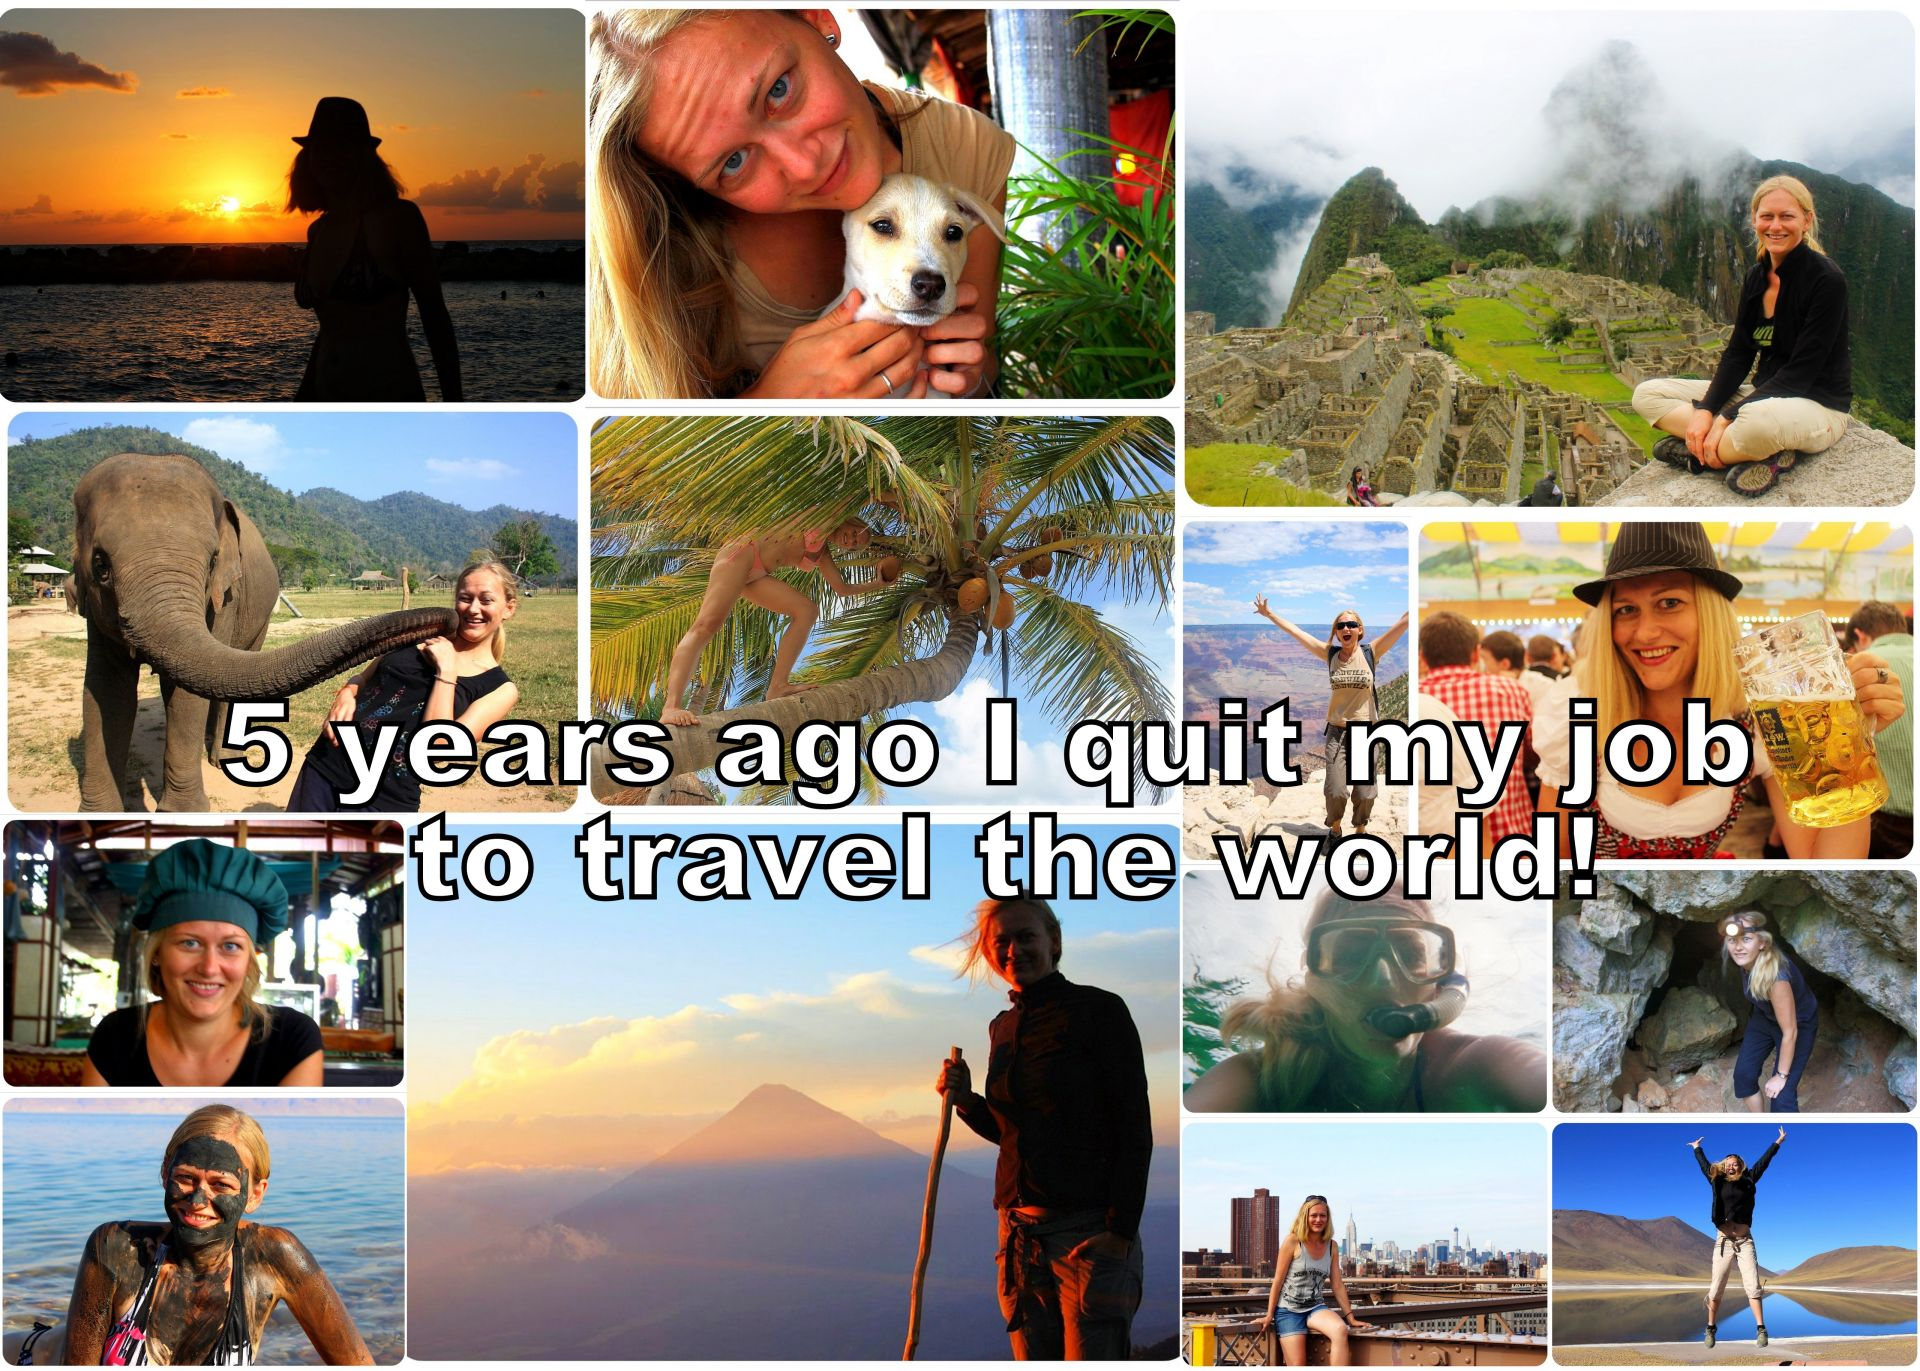 quit job to travel the world